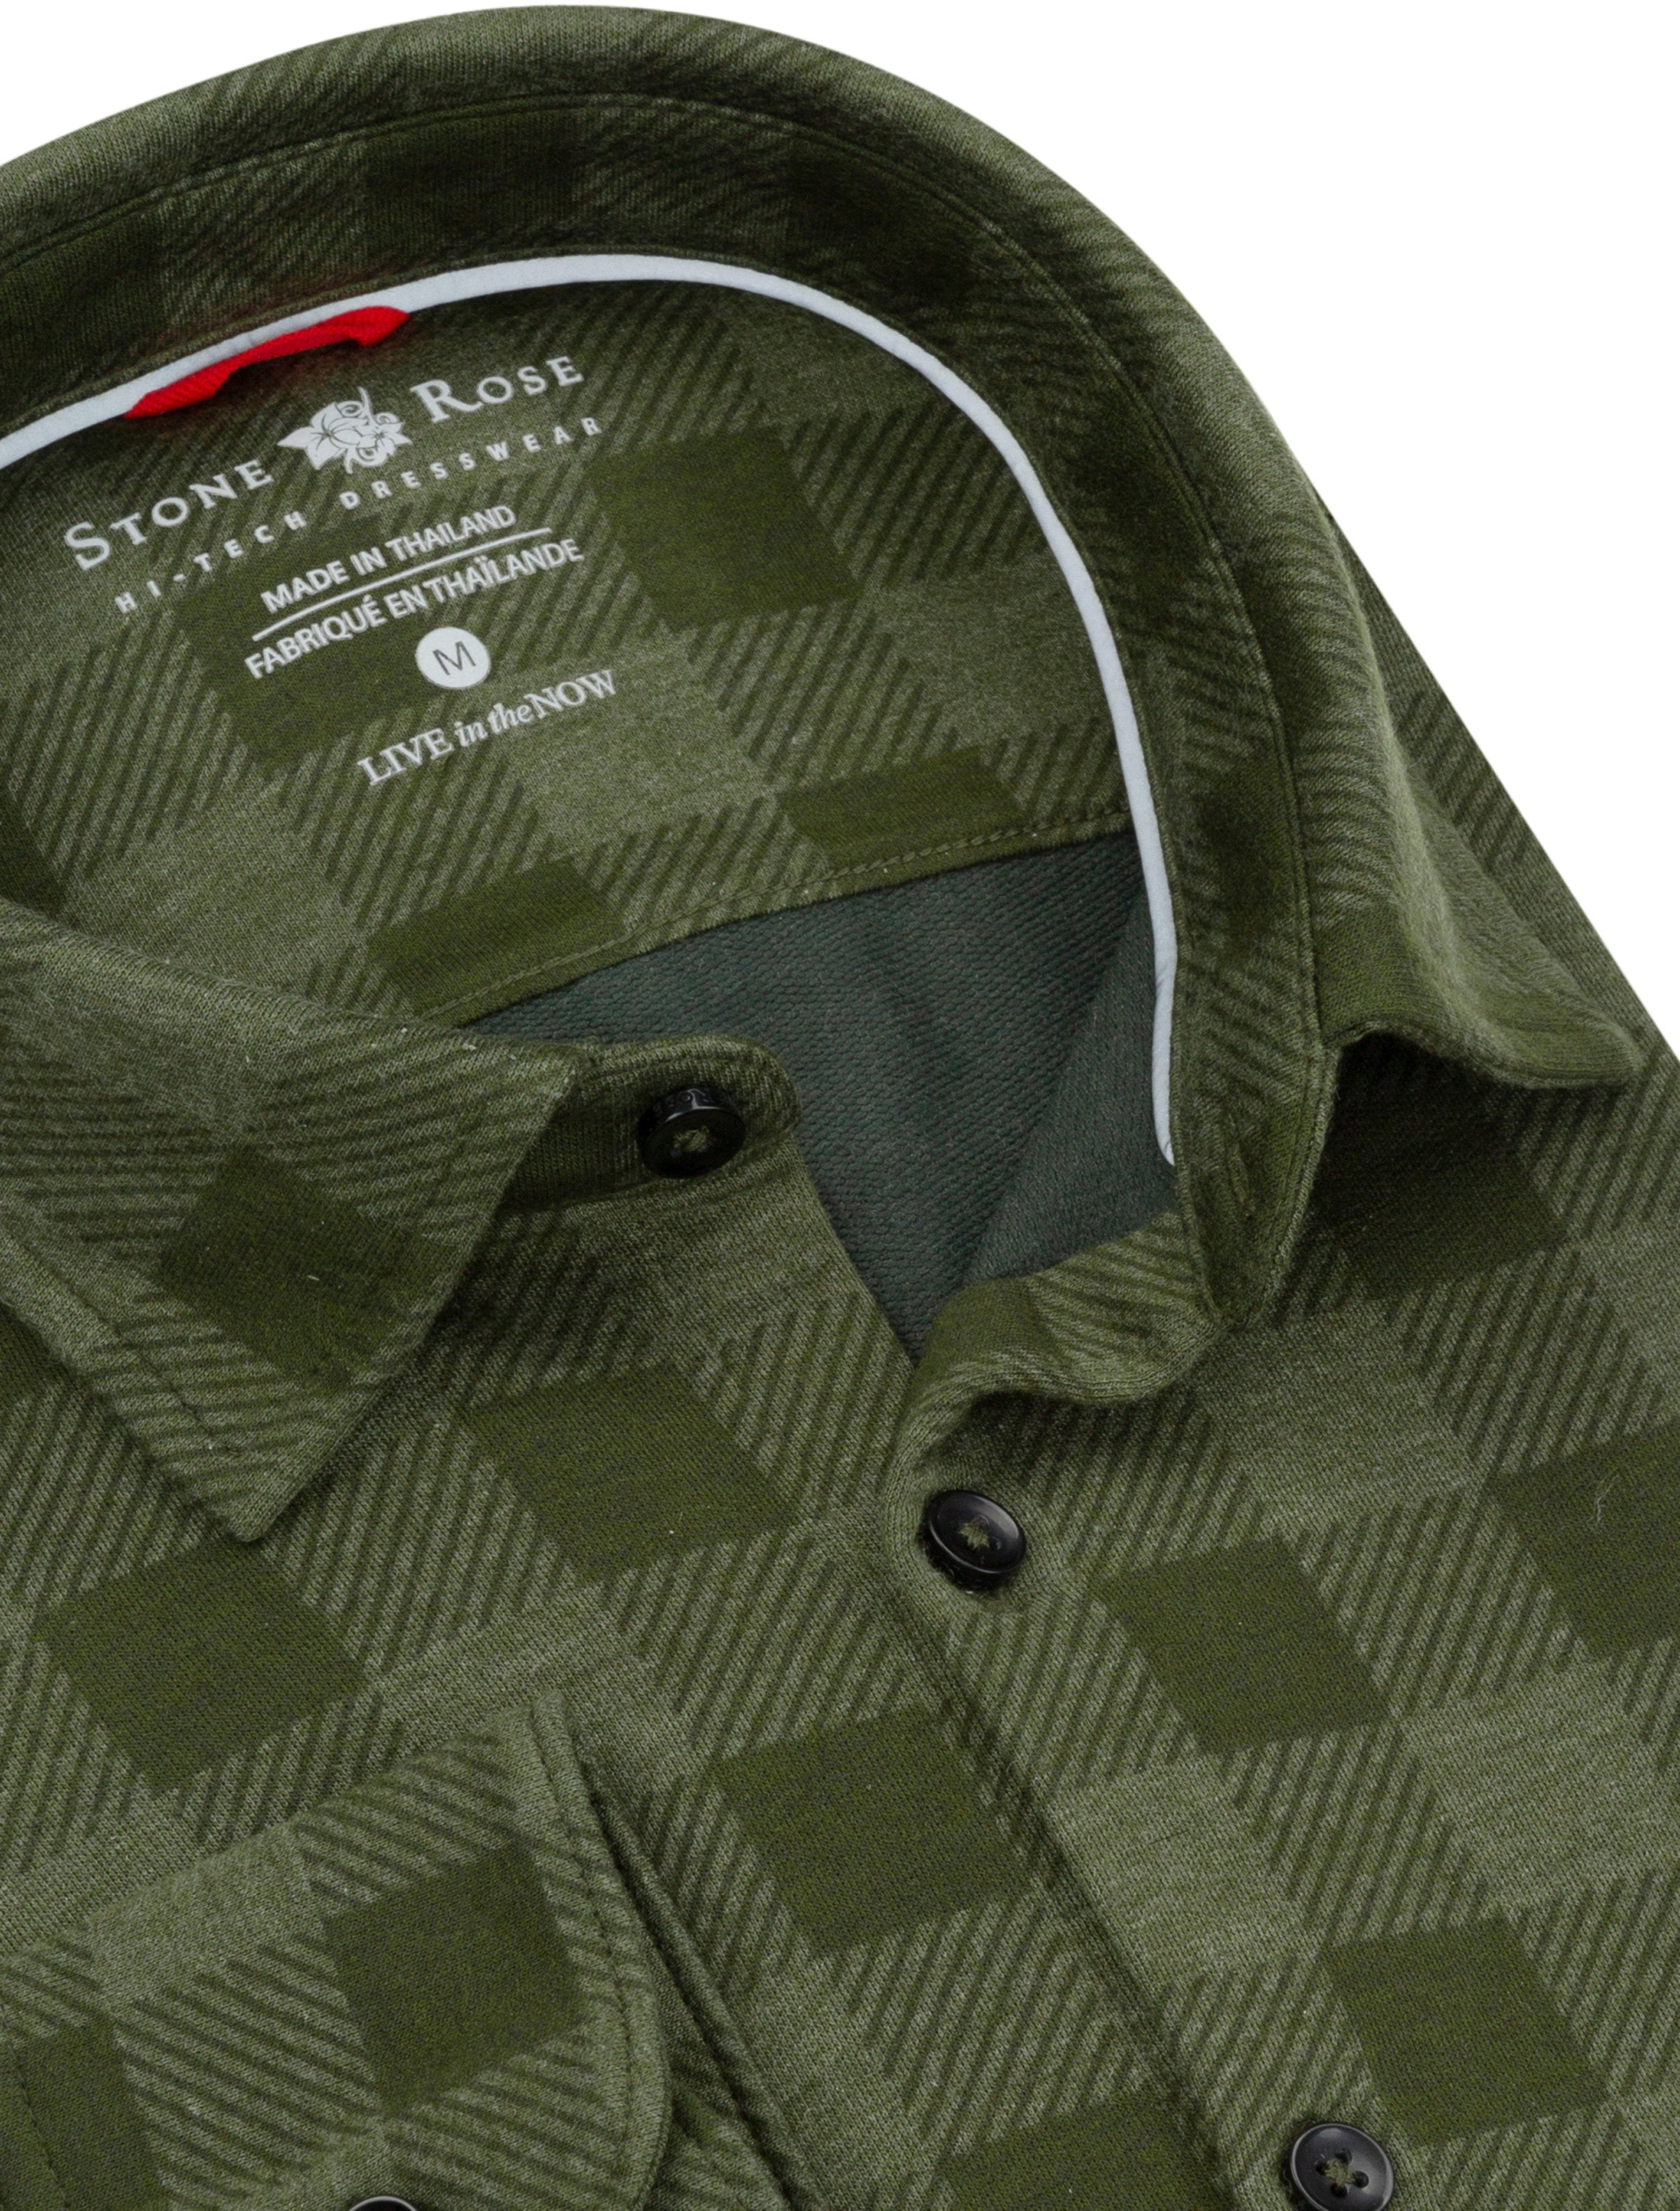 Olive Check Knit Performance Long Sleeve Shirt-Stone Rose